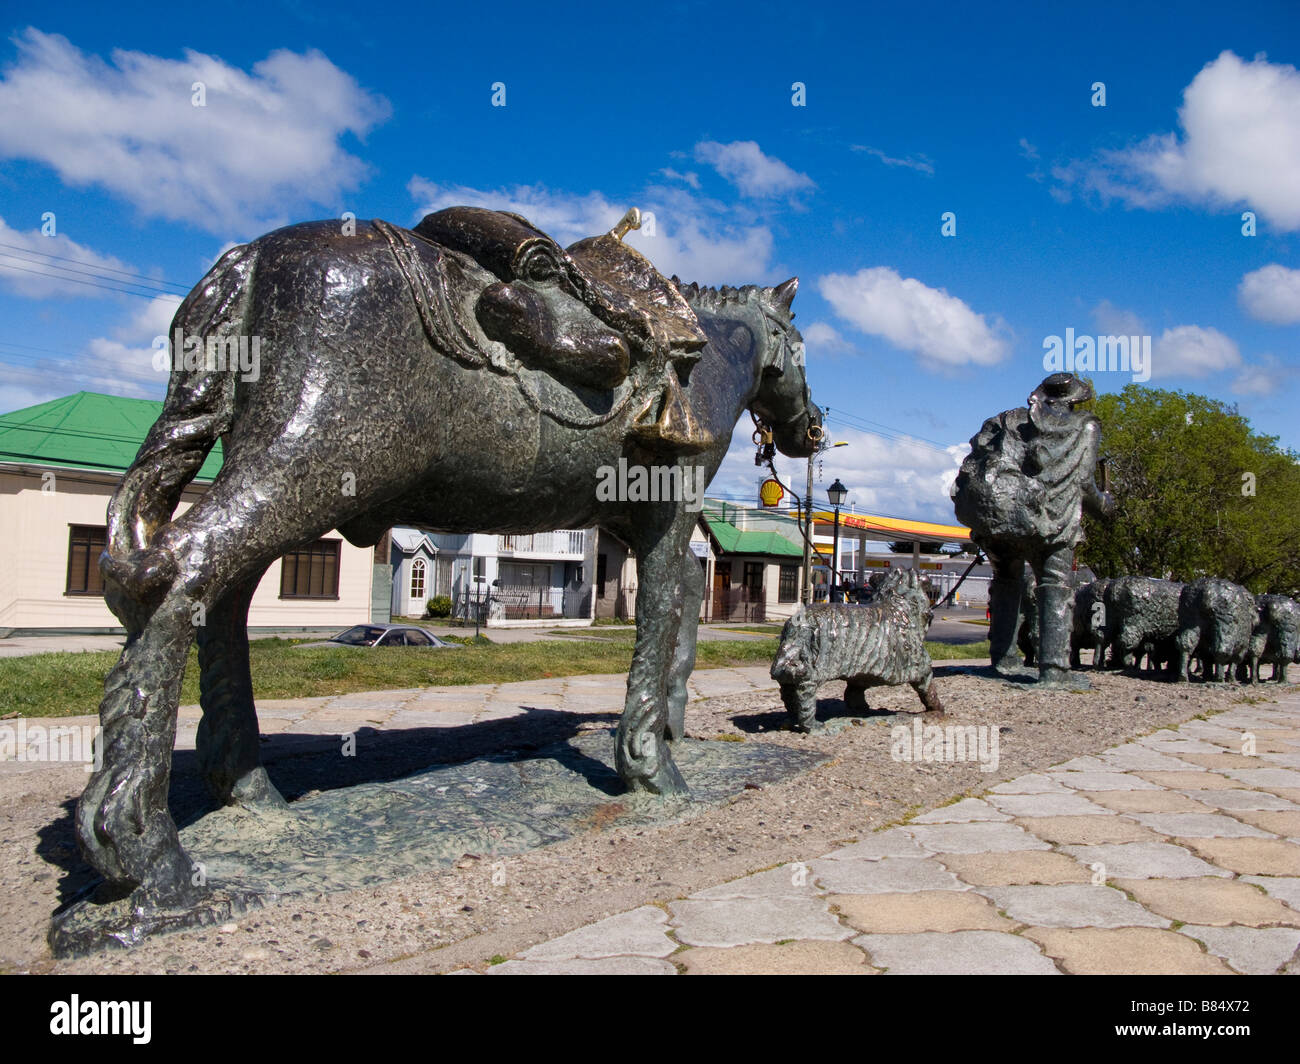 Statues of farmer and animals in Punta Arenas Patagonia, Chile, South America - Stock Image